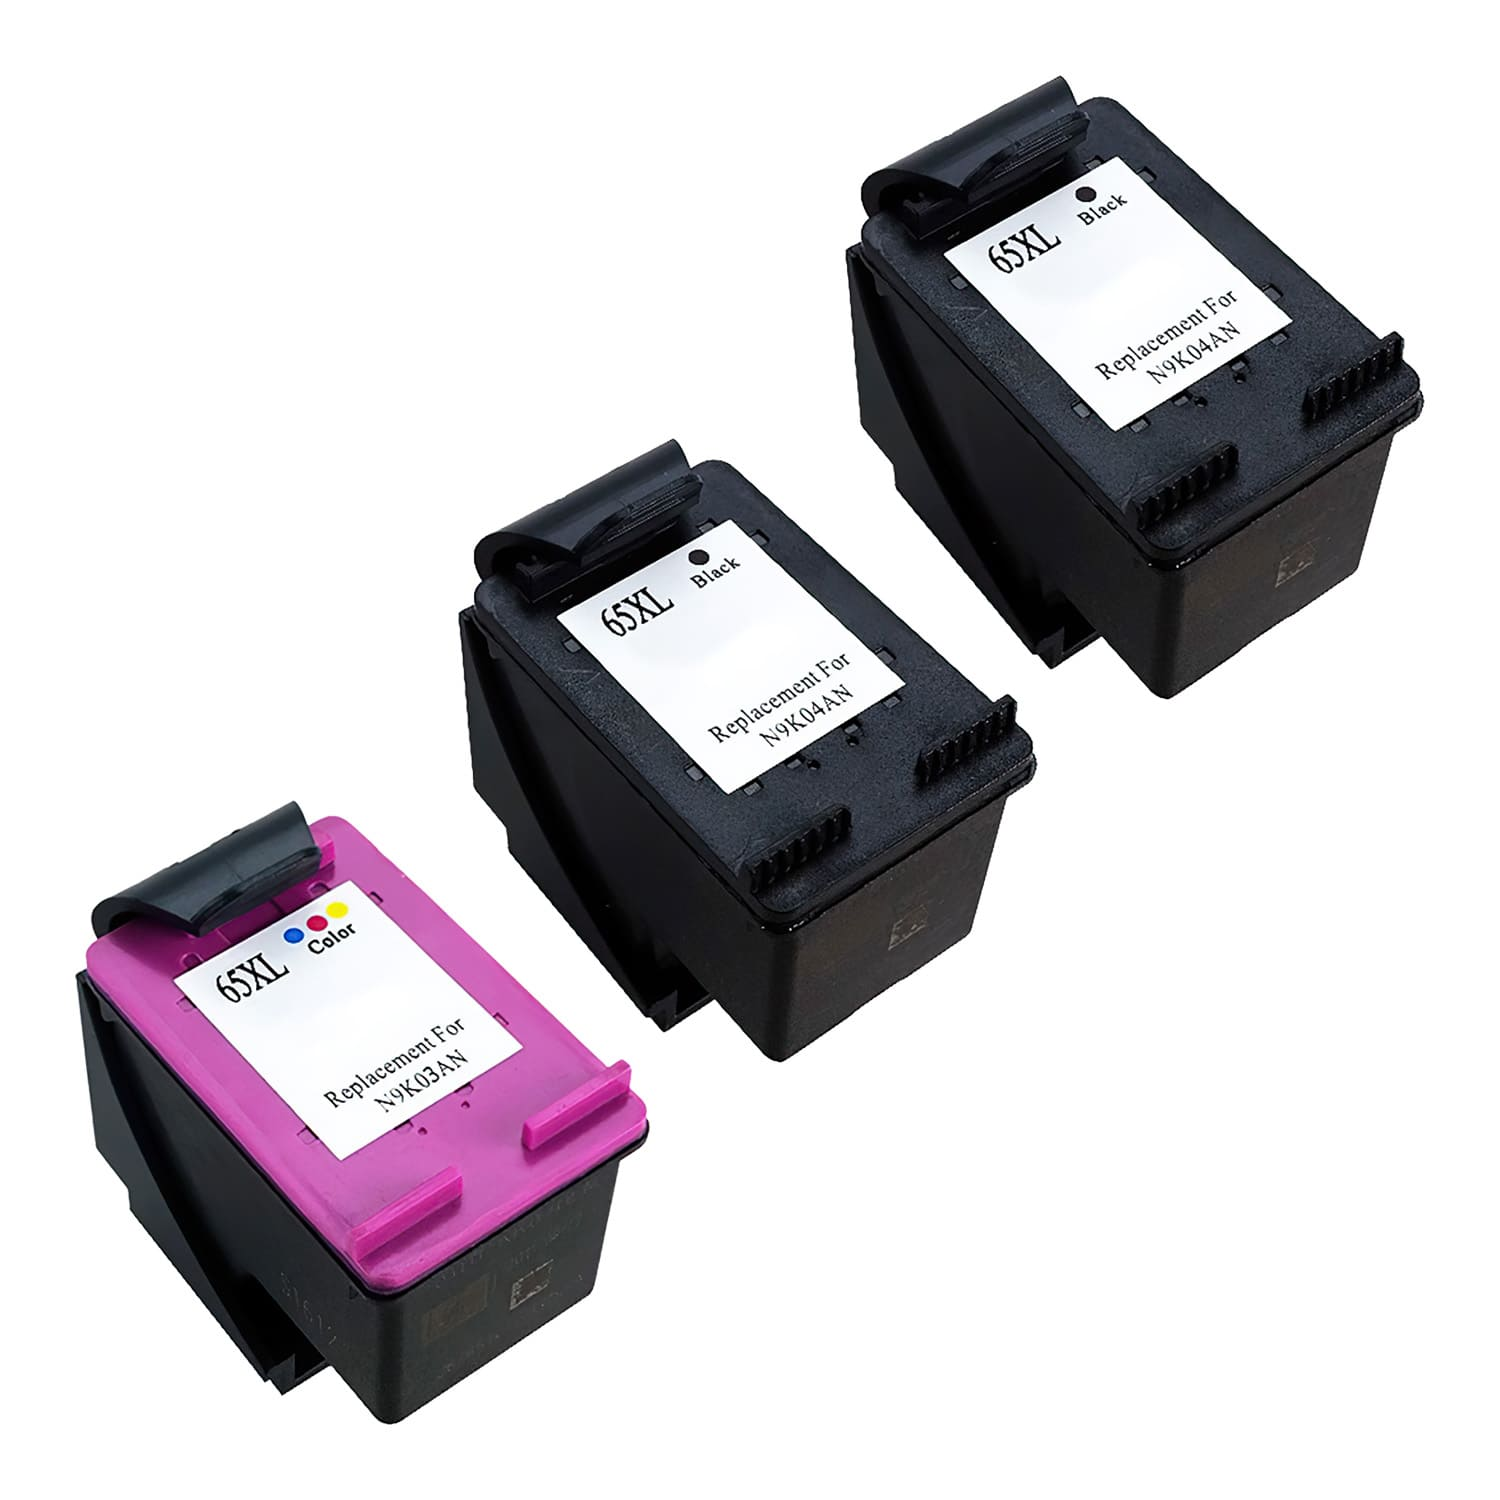 HP 3755 Ink | Deskjet 3755 Ink Cartridge